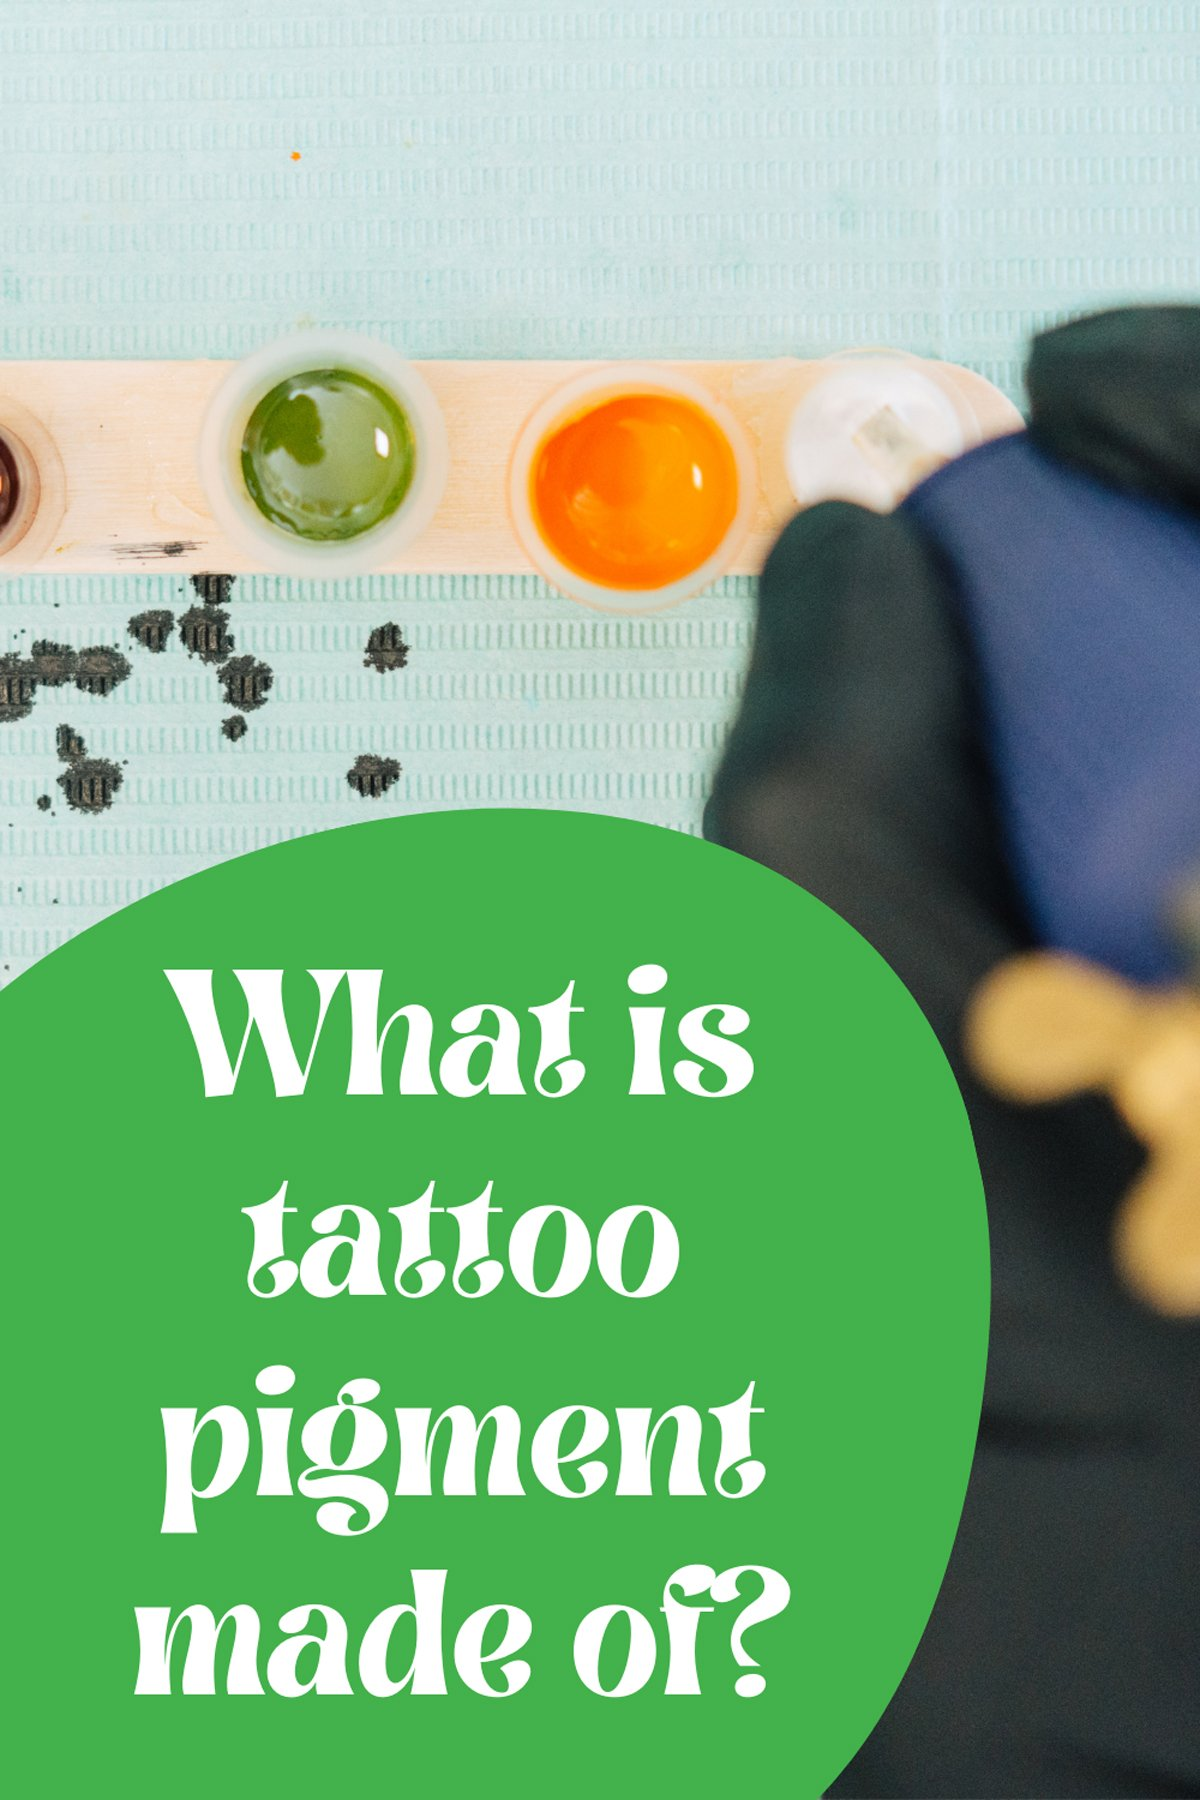 What is tattoo pigment made of?